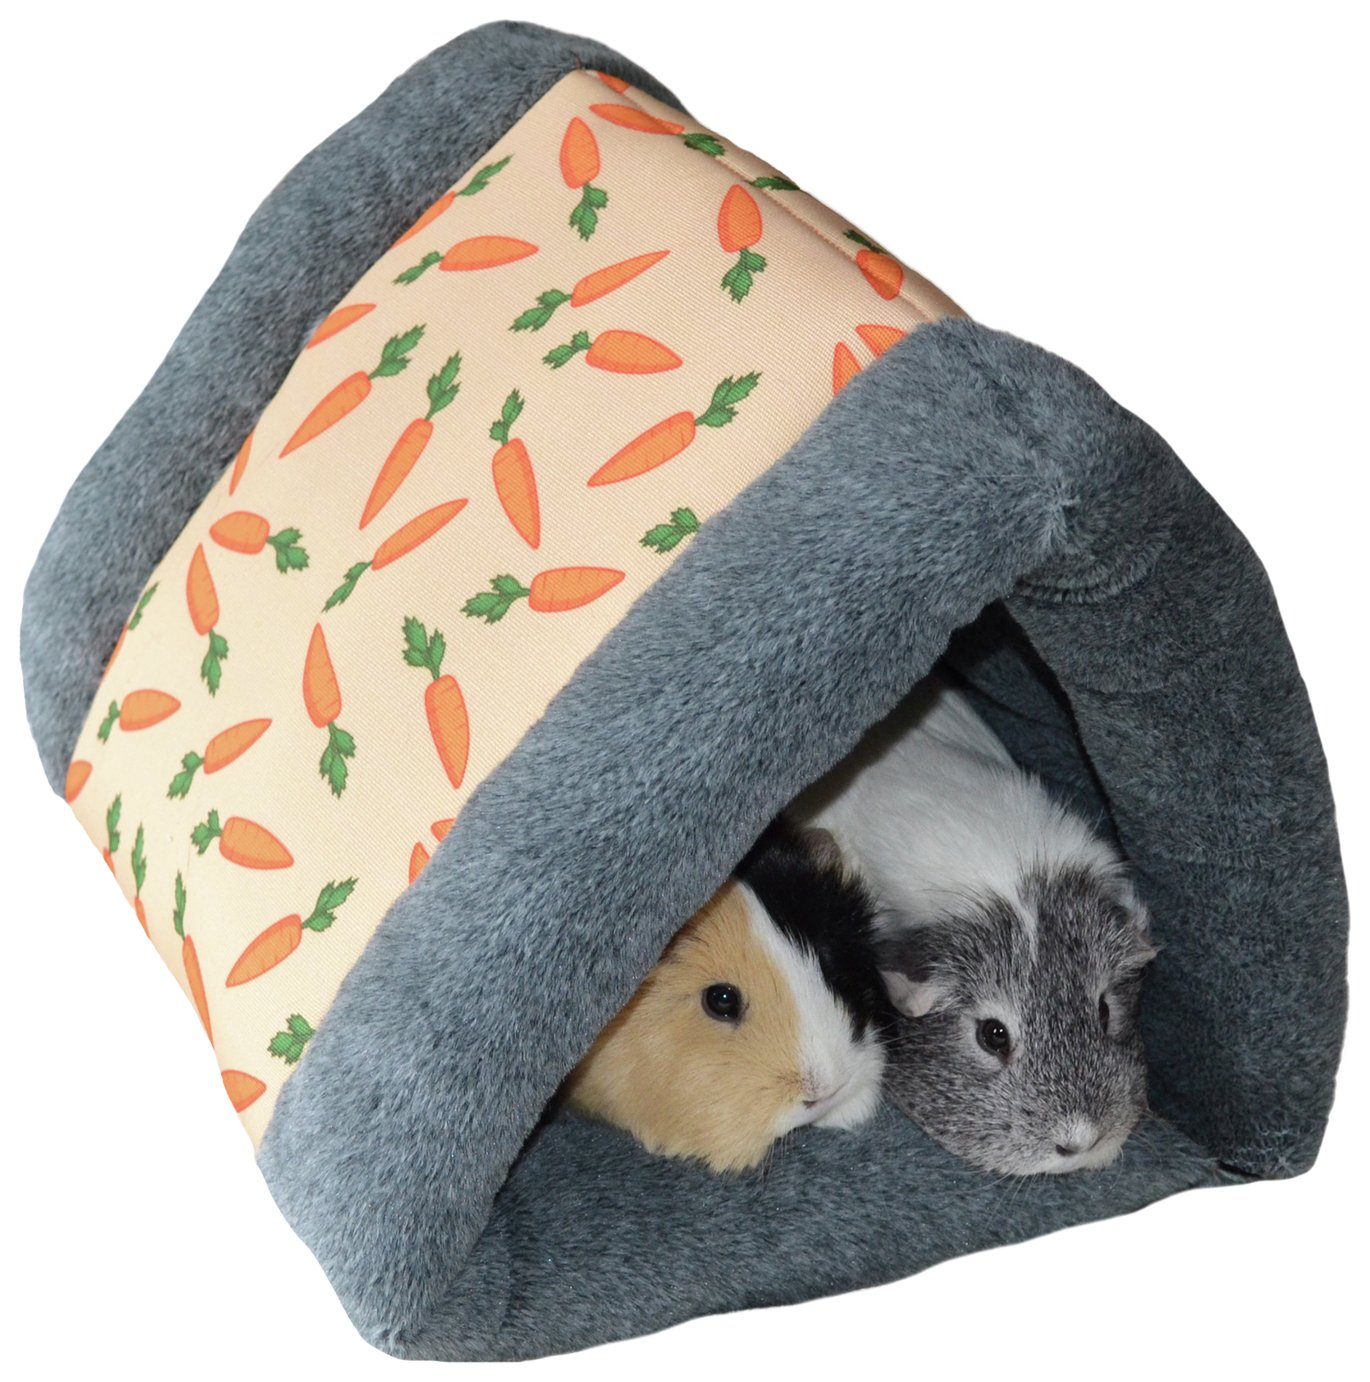 Snuggles Snuggle and Sleep Pet Tunnel from Snuggles